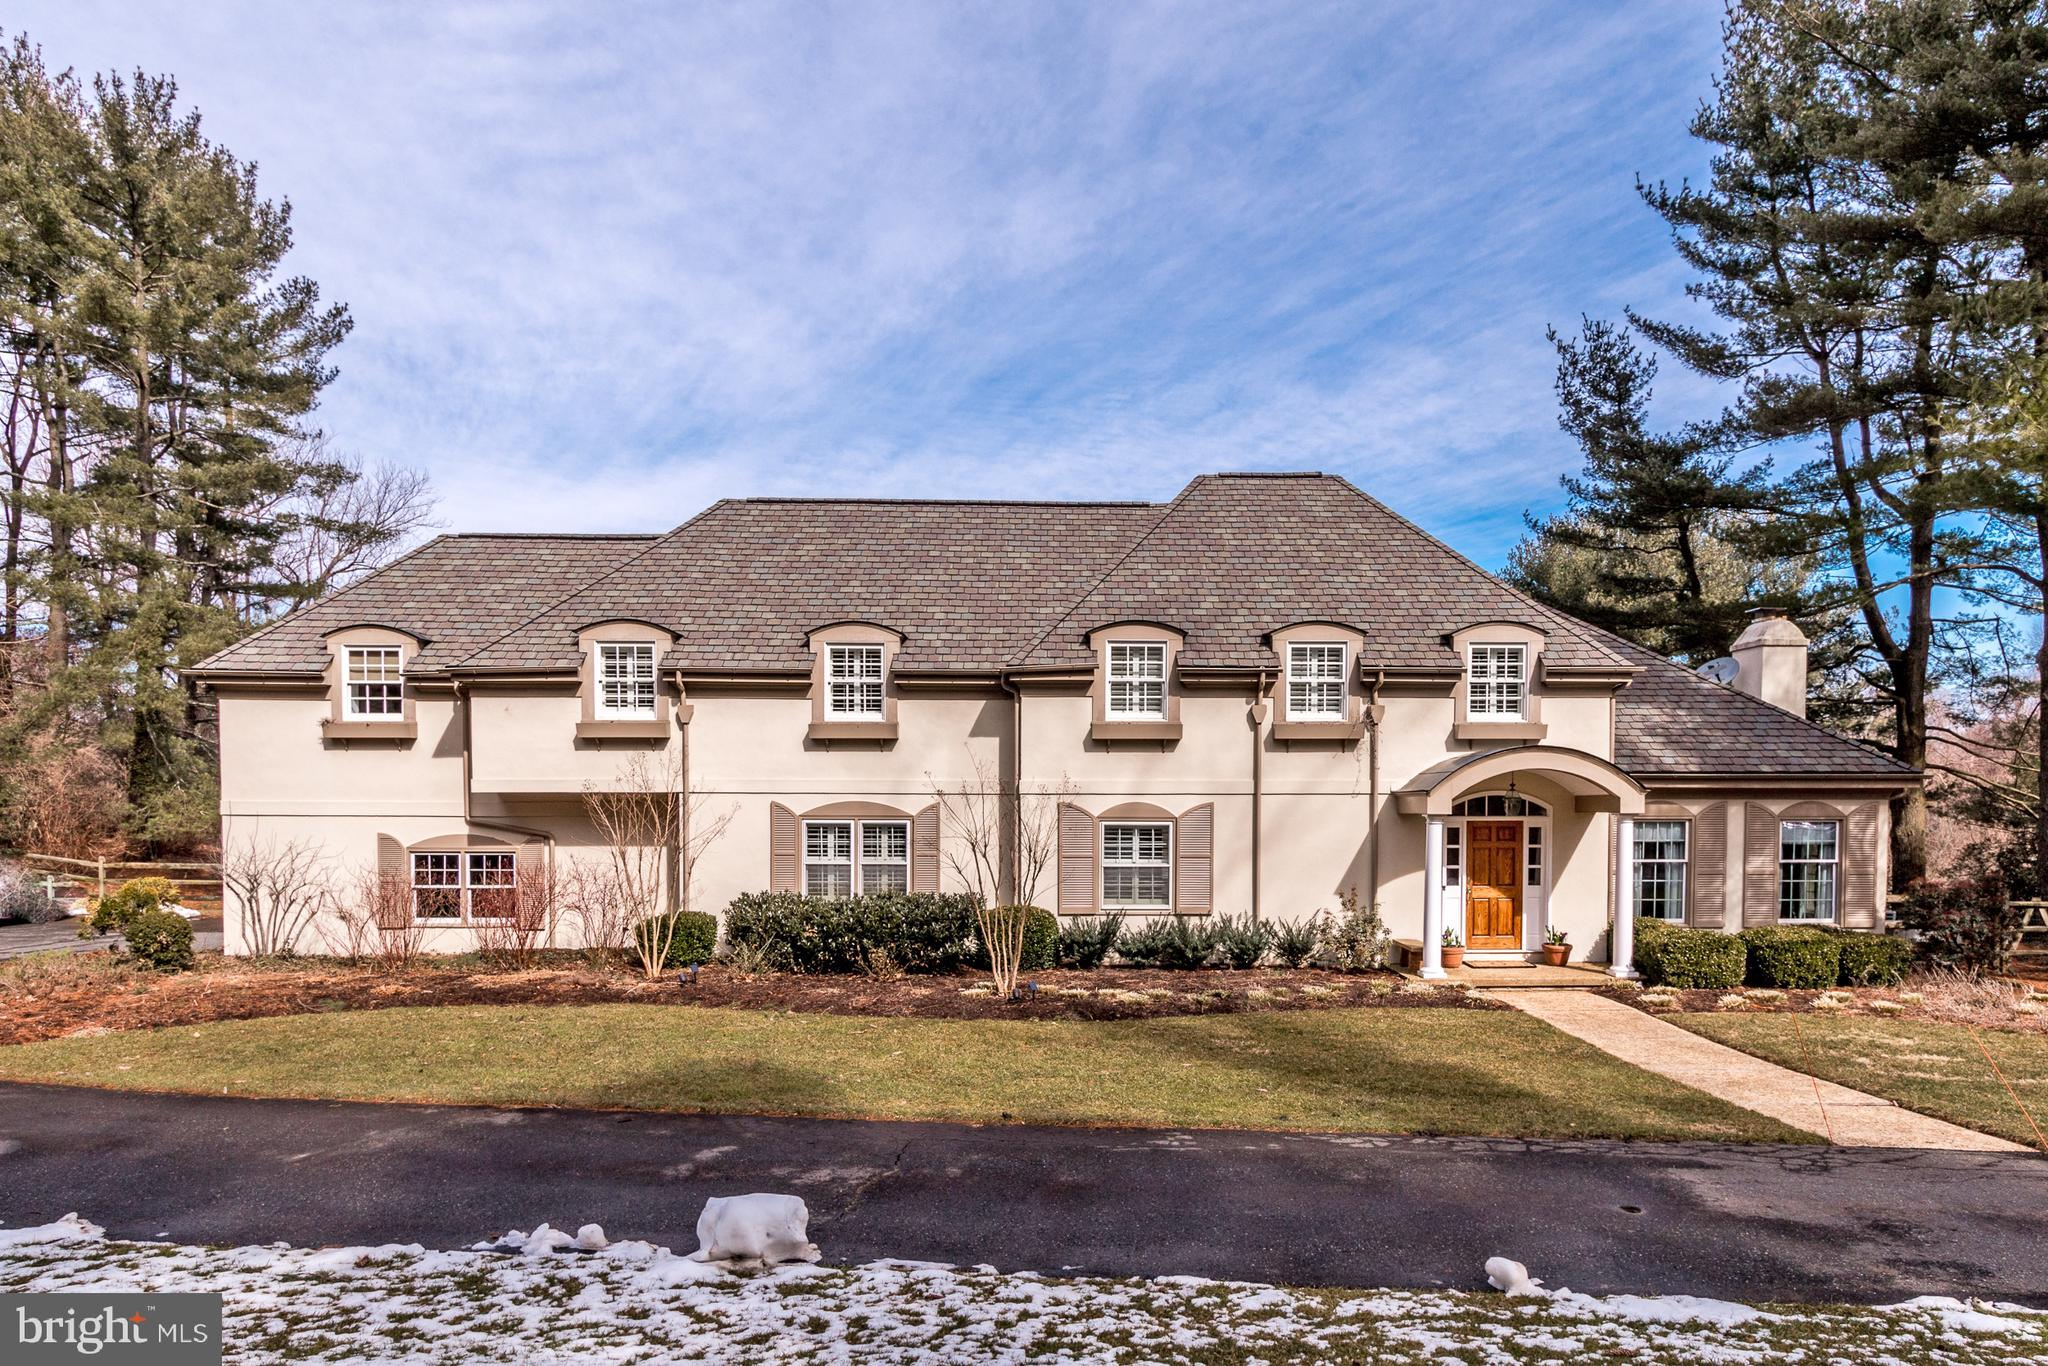 1507 FAIRVILLE ROAD CHADDS FORD, PA 19317 Chester County